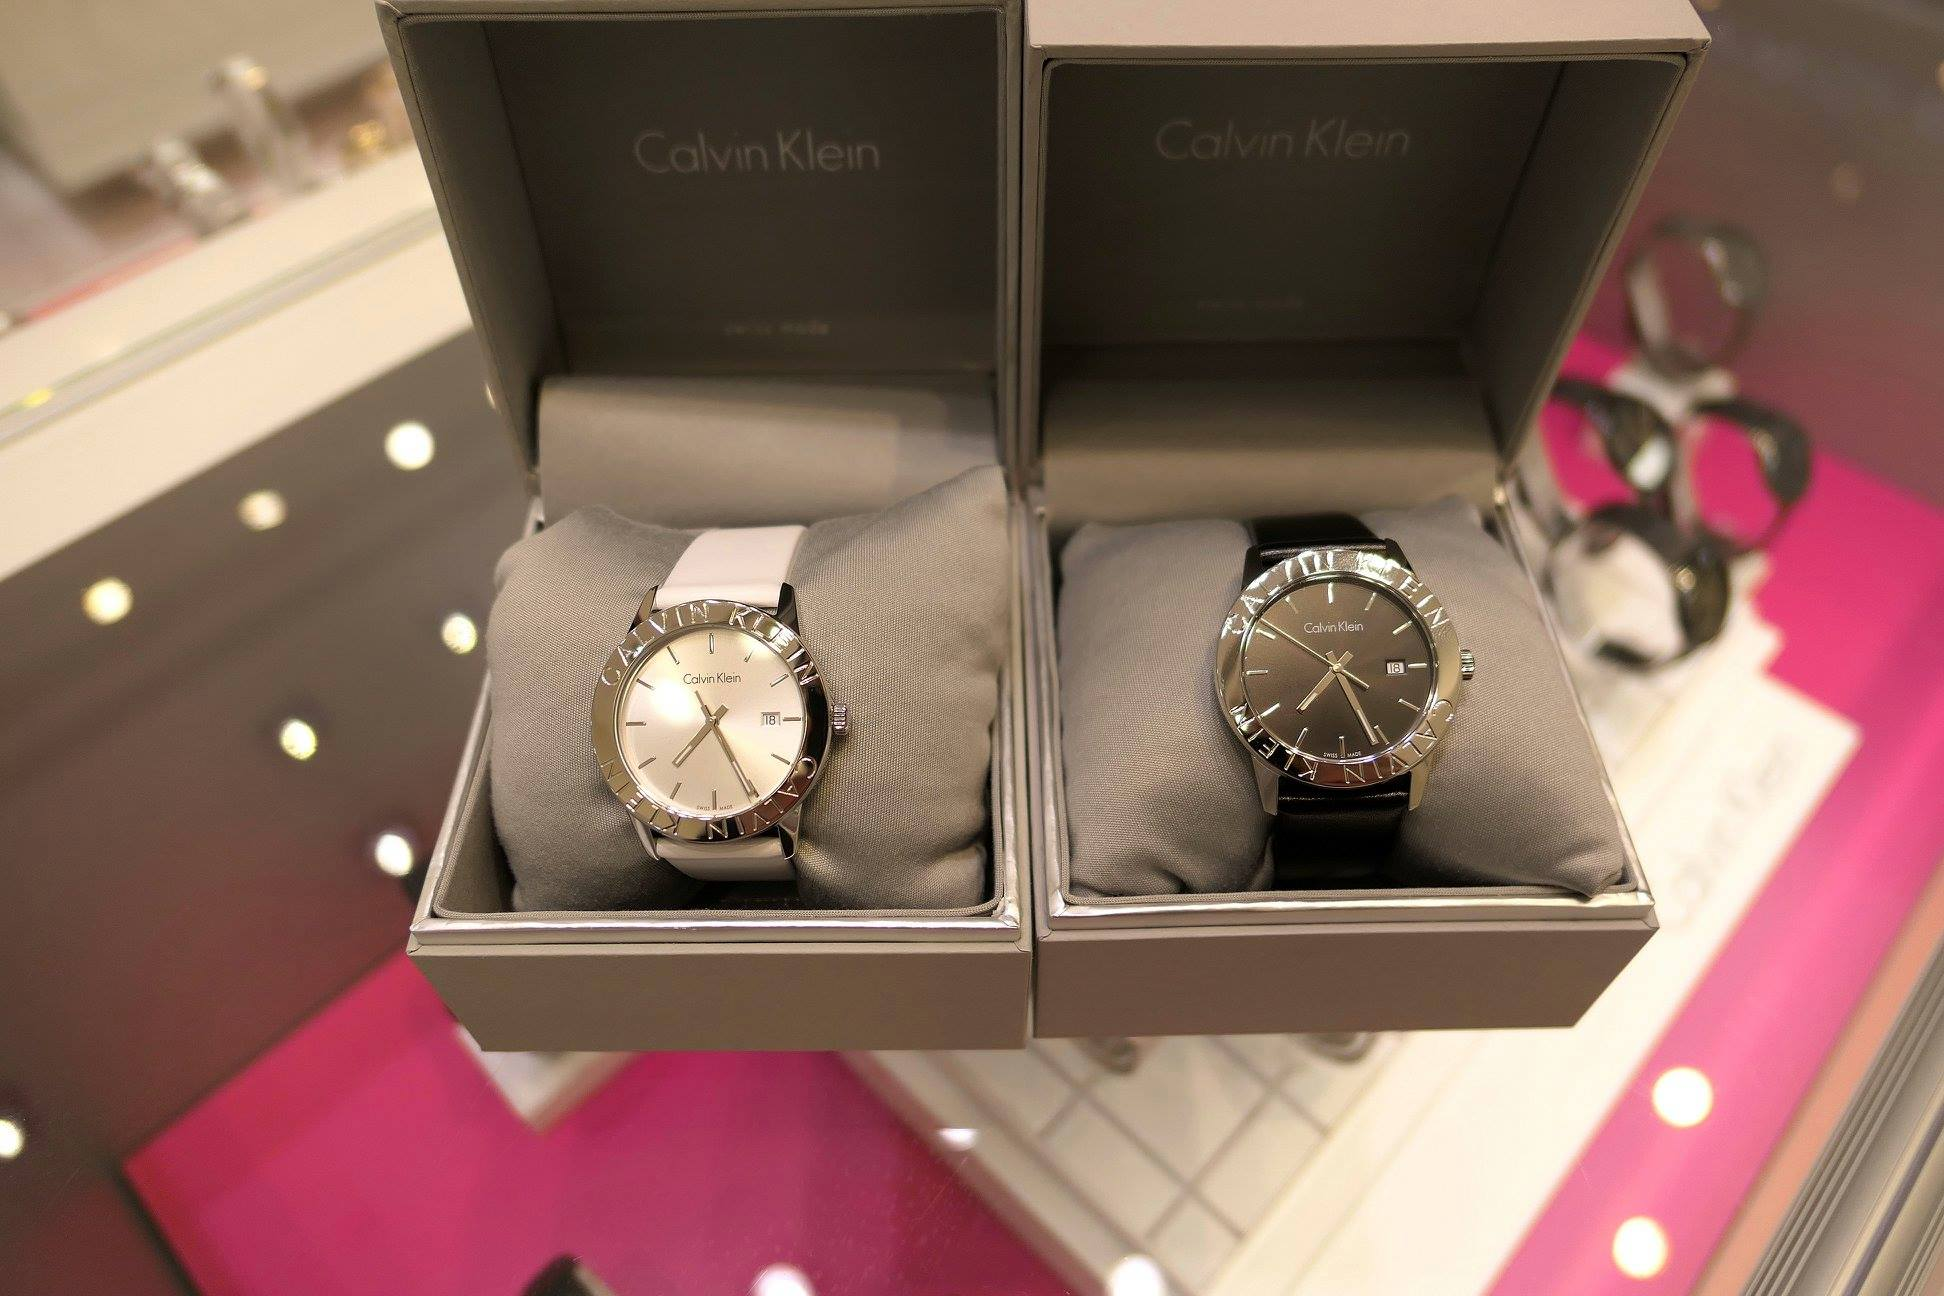 Calvin Klein Watches Giveaway for Valentine's Day 2018